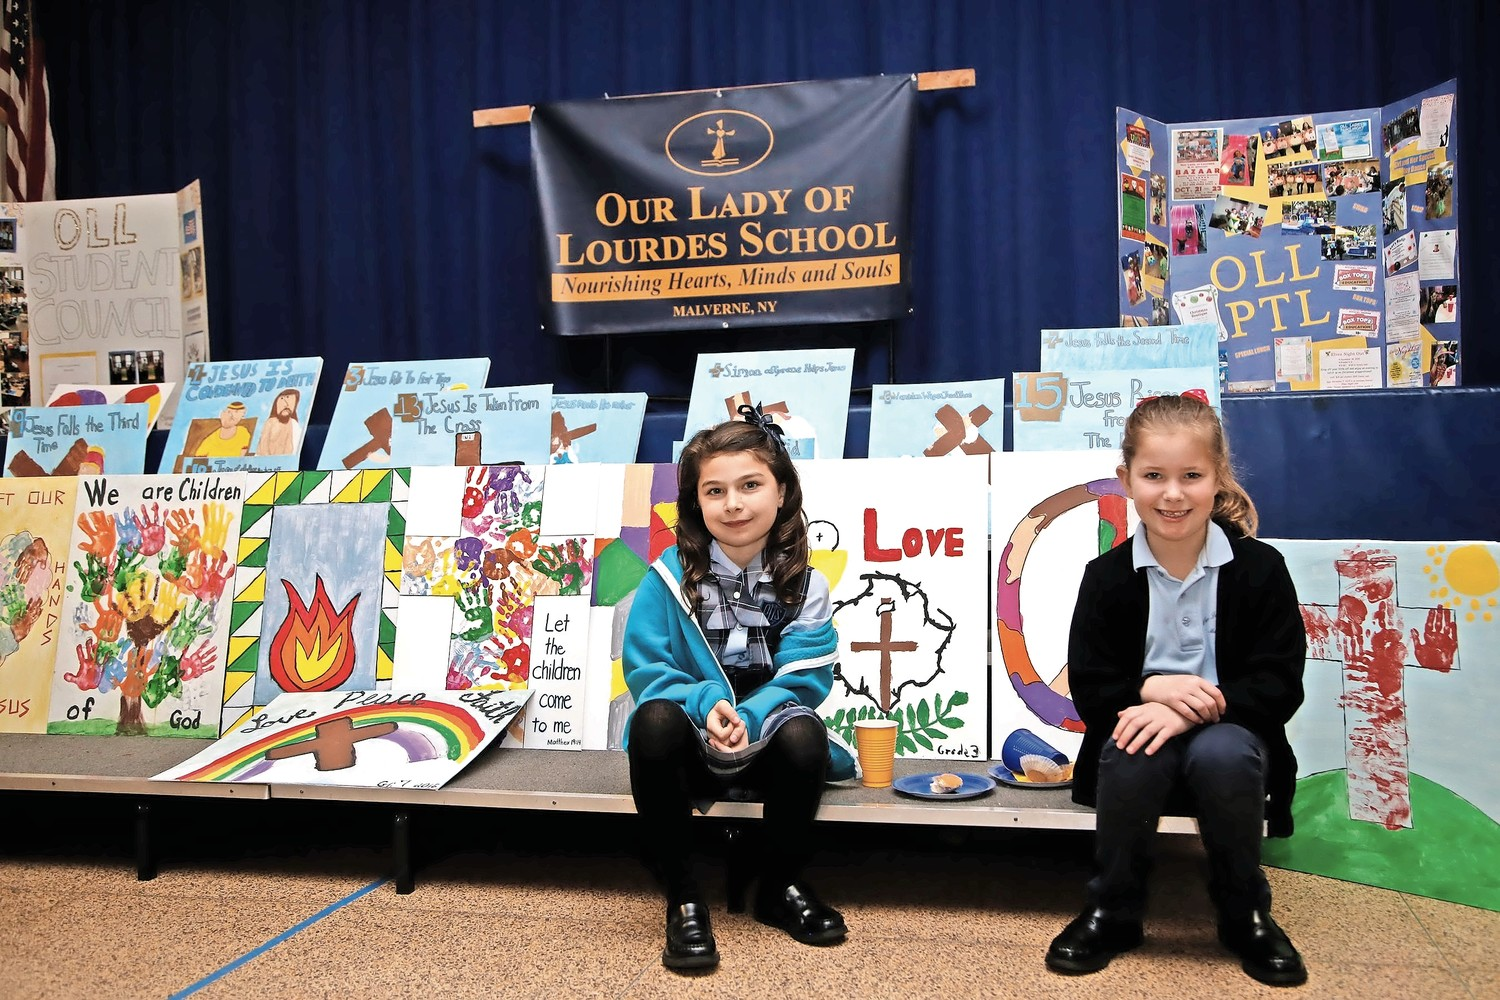 Second-graders Allison Connolly, left, and Katherine Frohme take a break from the festivities at O.L.L.